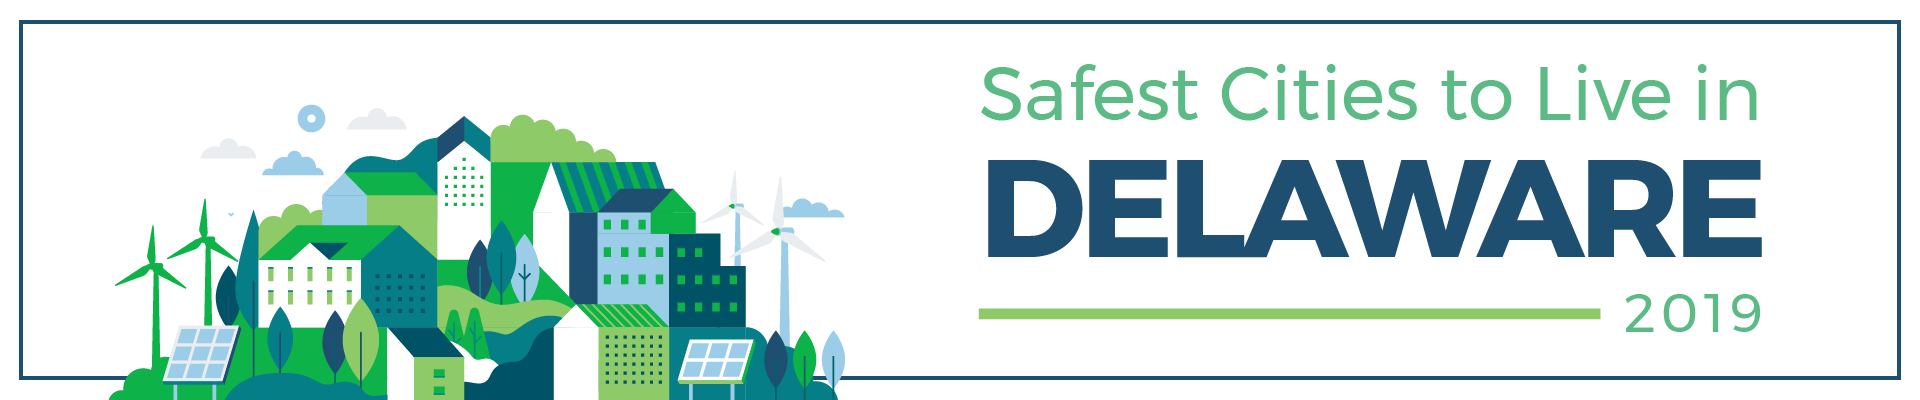 header - safest_cities_delaware_2019